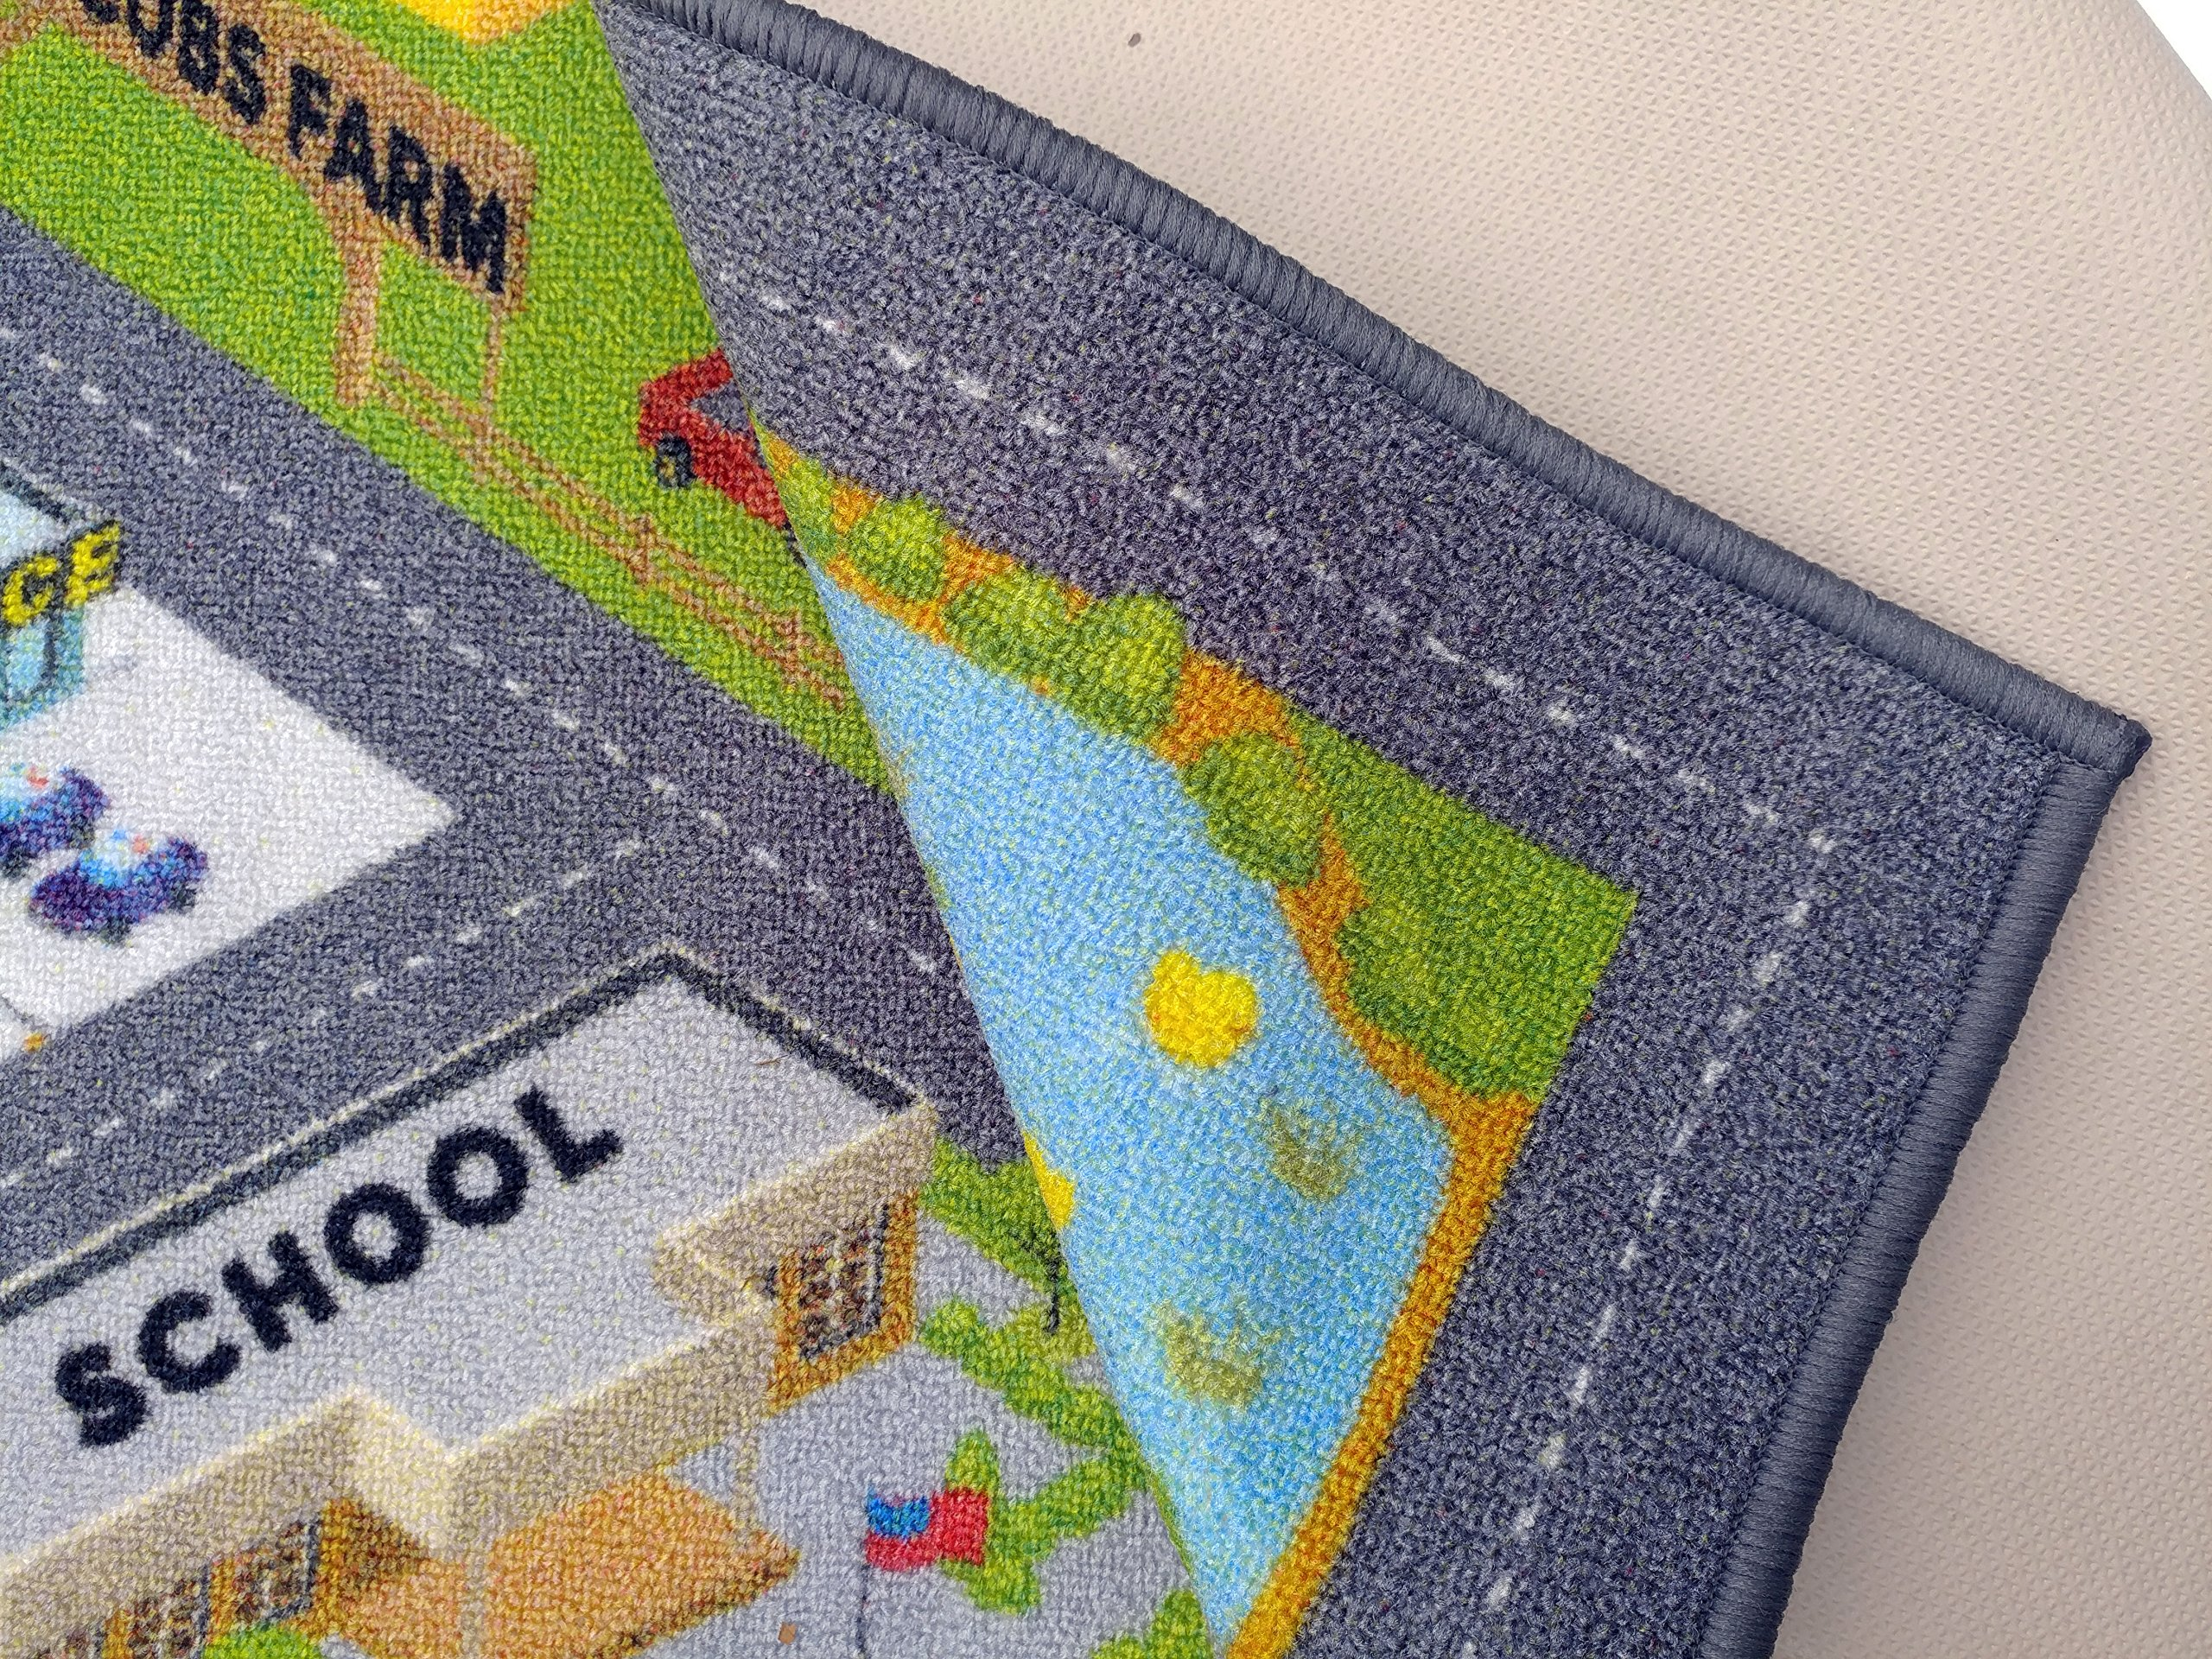 KC Cubs Playtime Collection Country Farm Road Map with Construction Site Educational Learning Area Rug Carpet for Kids and Children Bedroom and Playroom (3' 3'' x 4' 7'') by Kev & Cooper (Image #4)